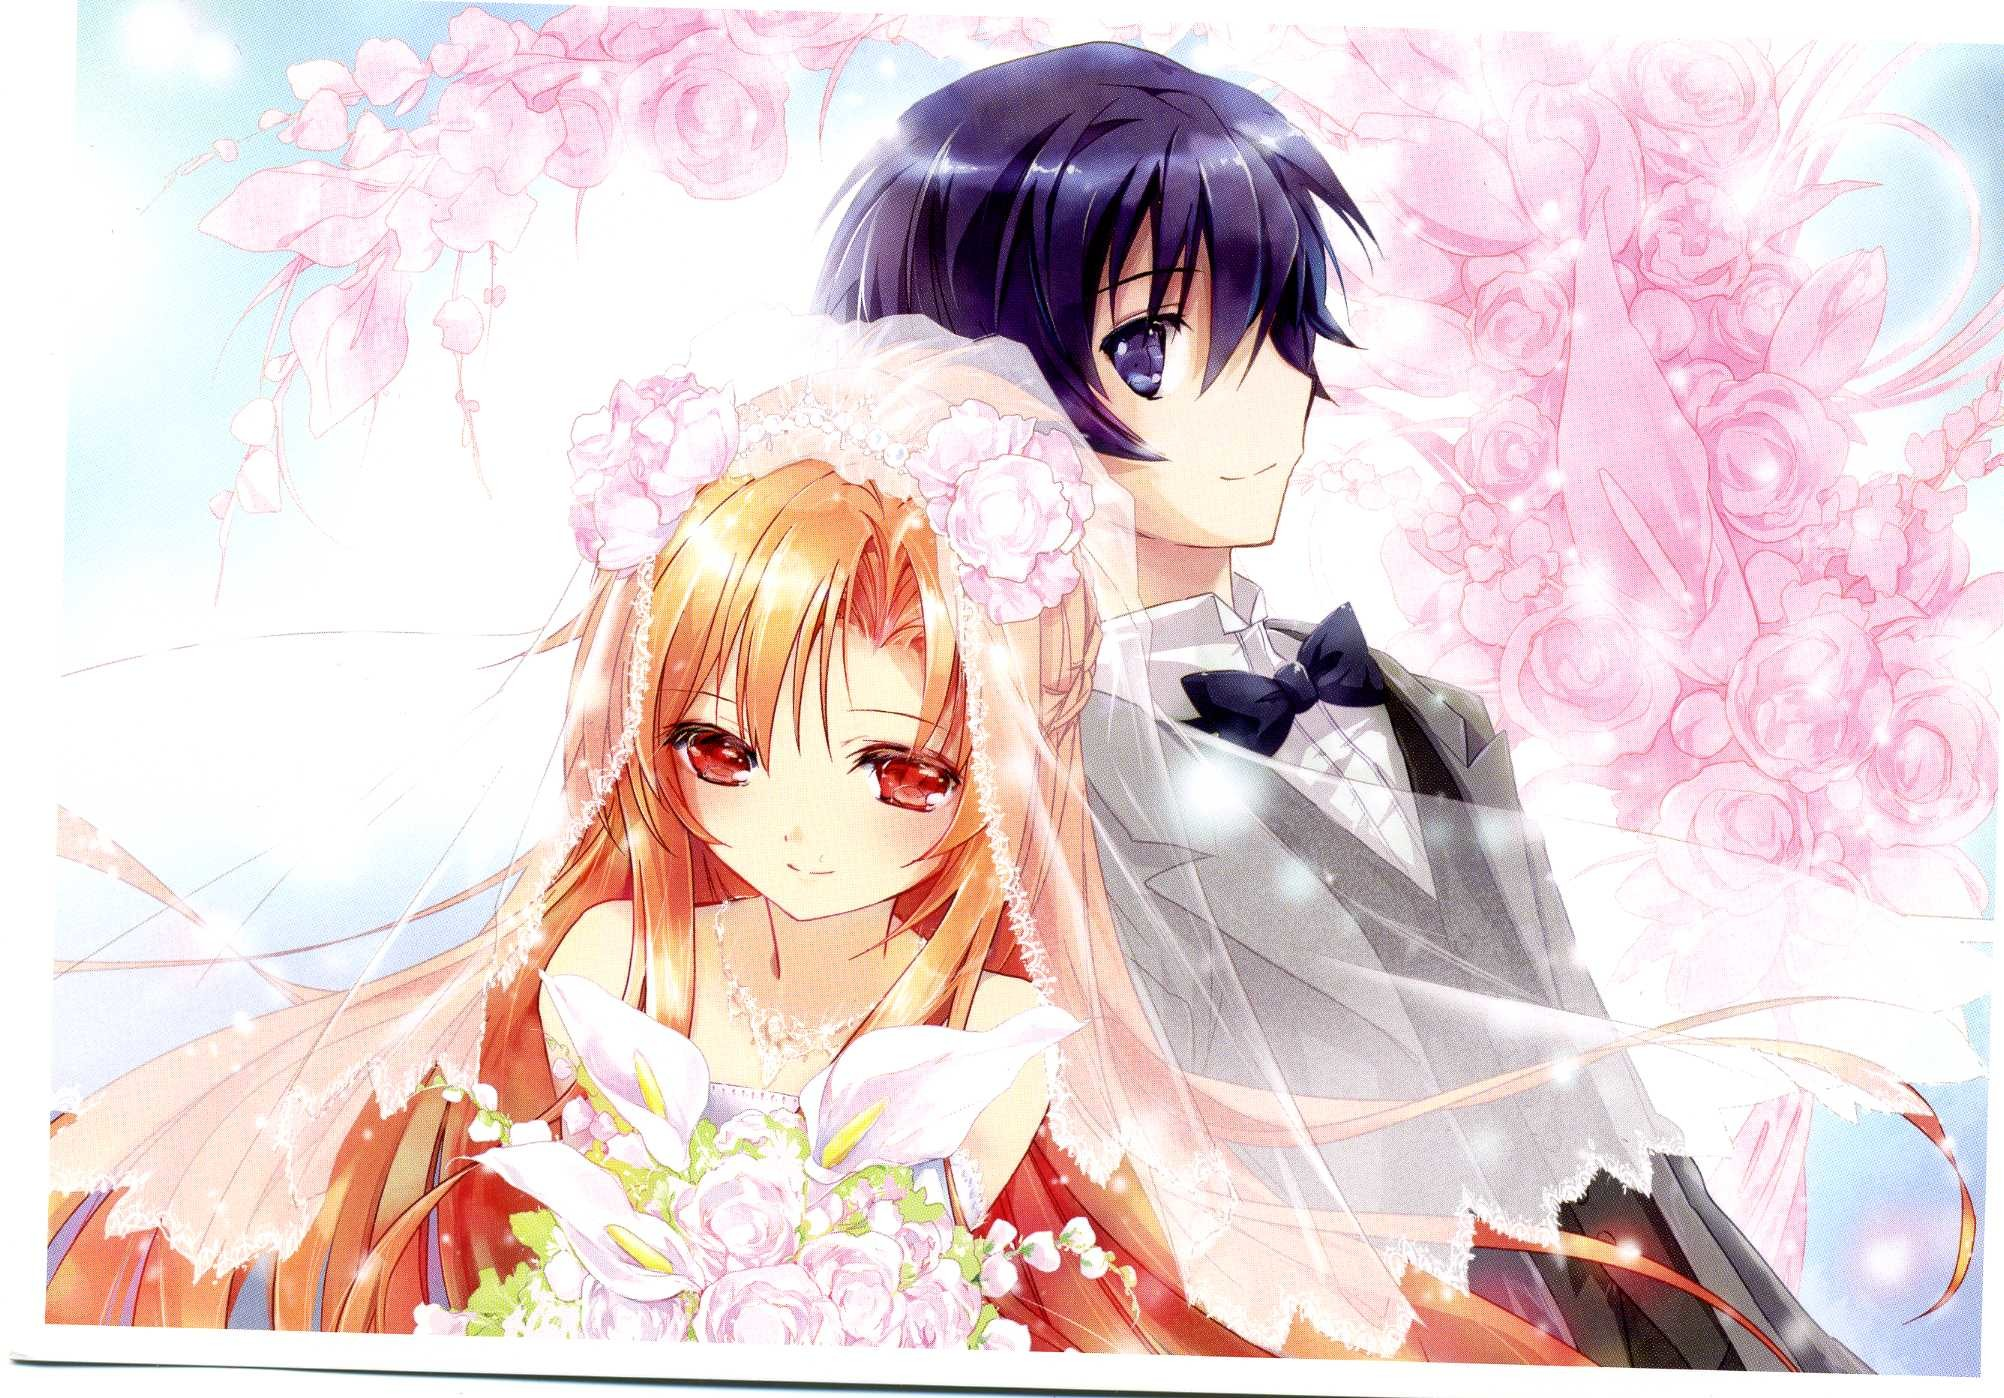 2004x1398 Are you looking for anime couple wallpapers or SAO wallpapers? - added by daftiduck